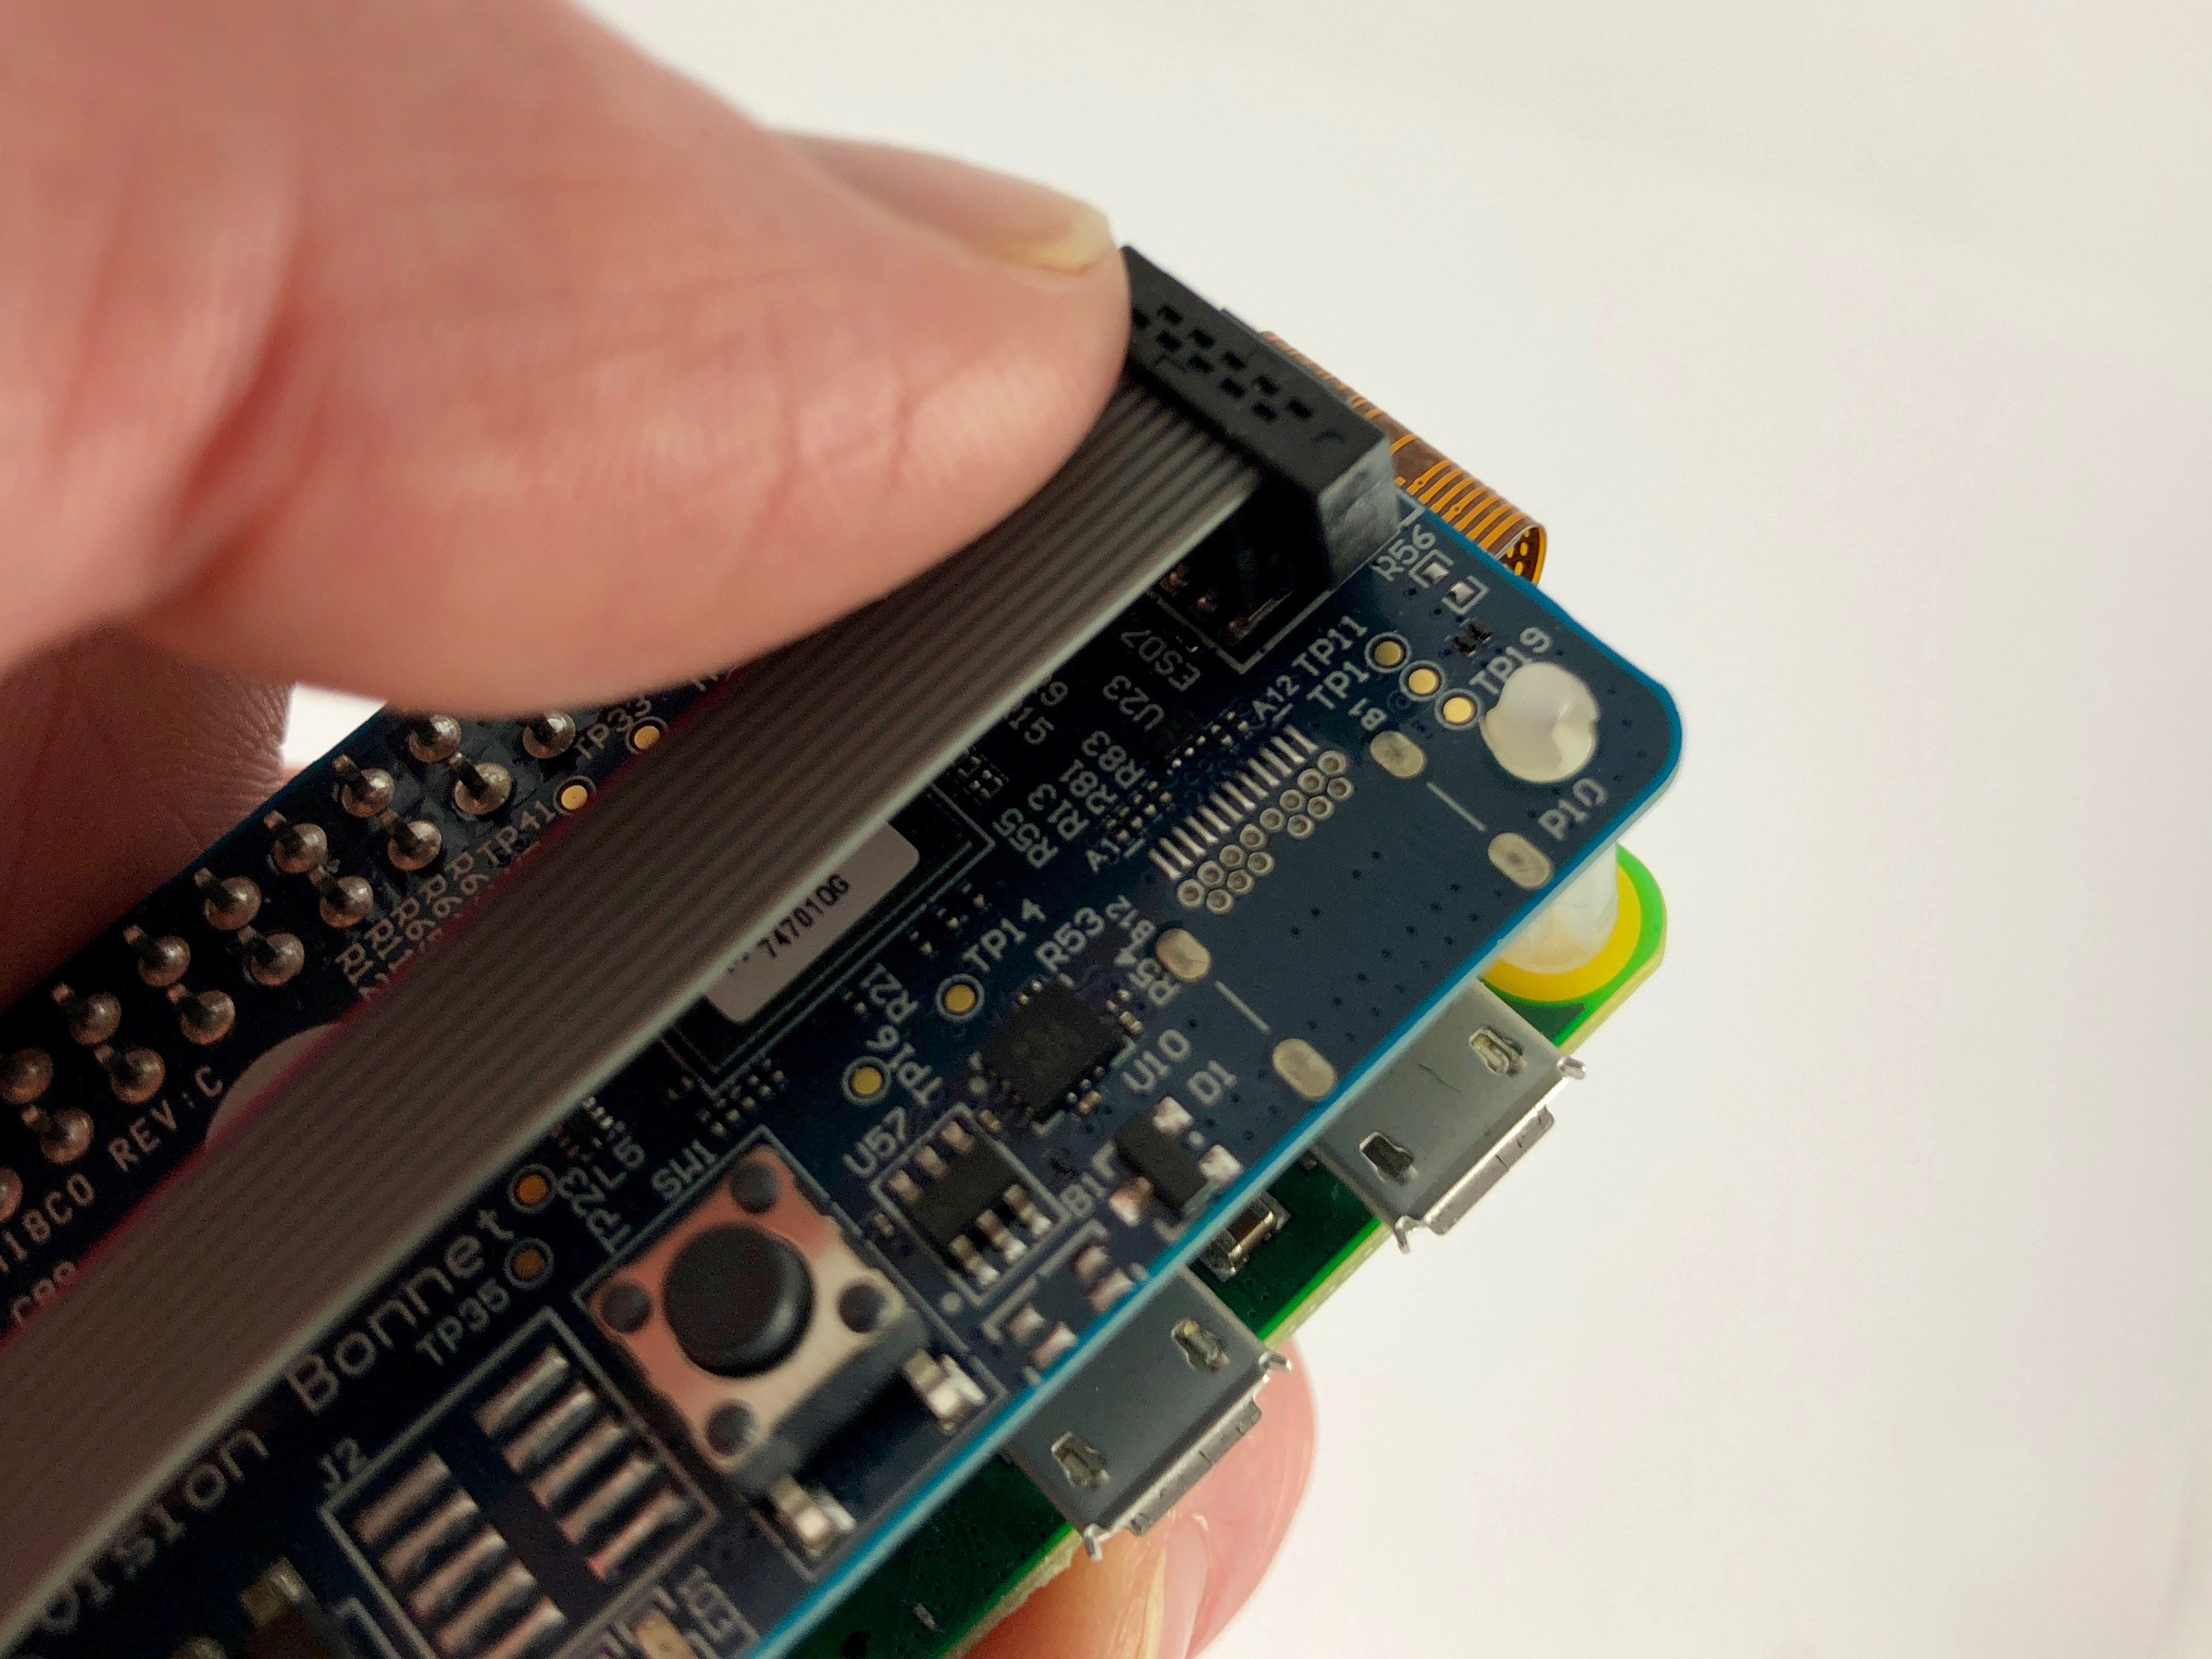 Hands on with the AIY Projects Vision Kit - Alasdair Allan